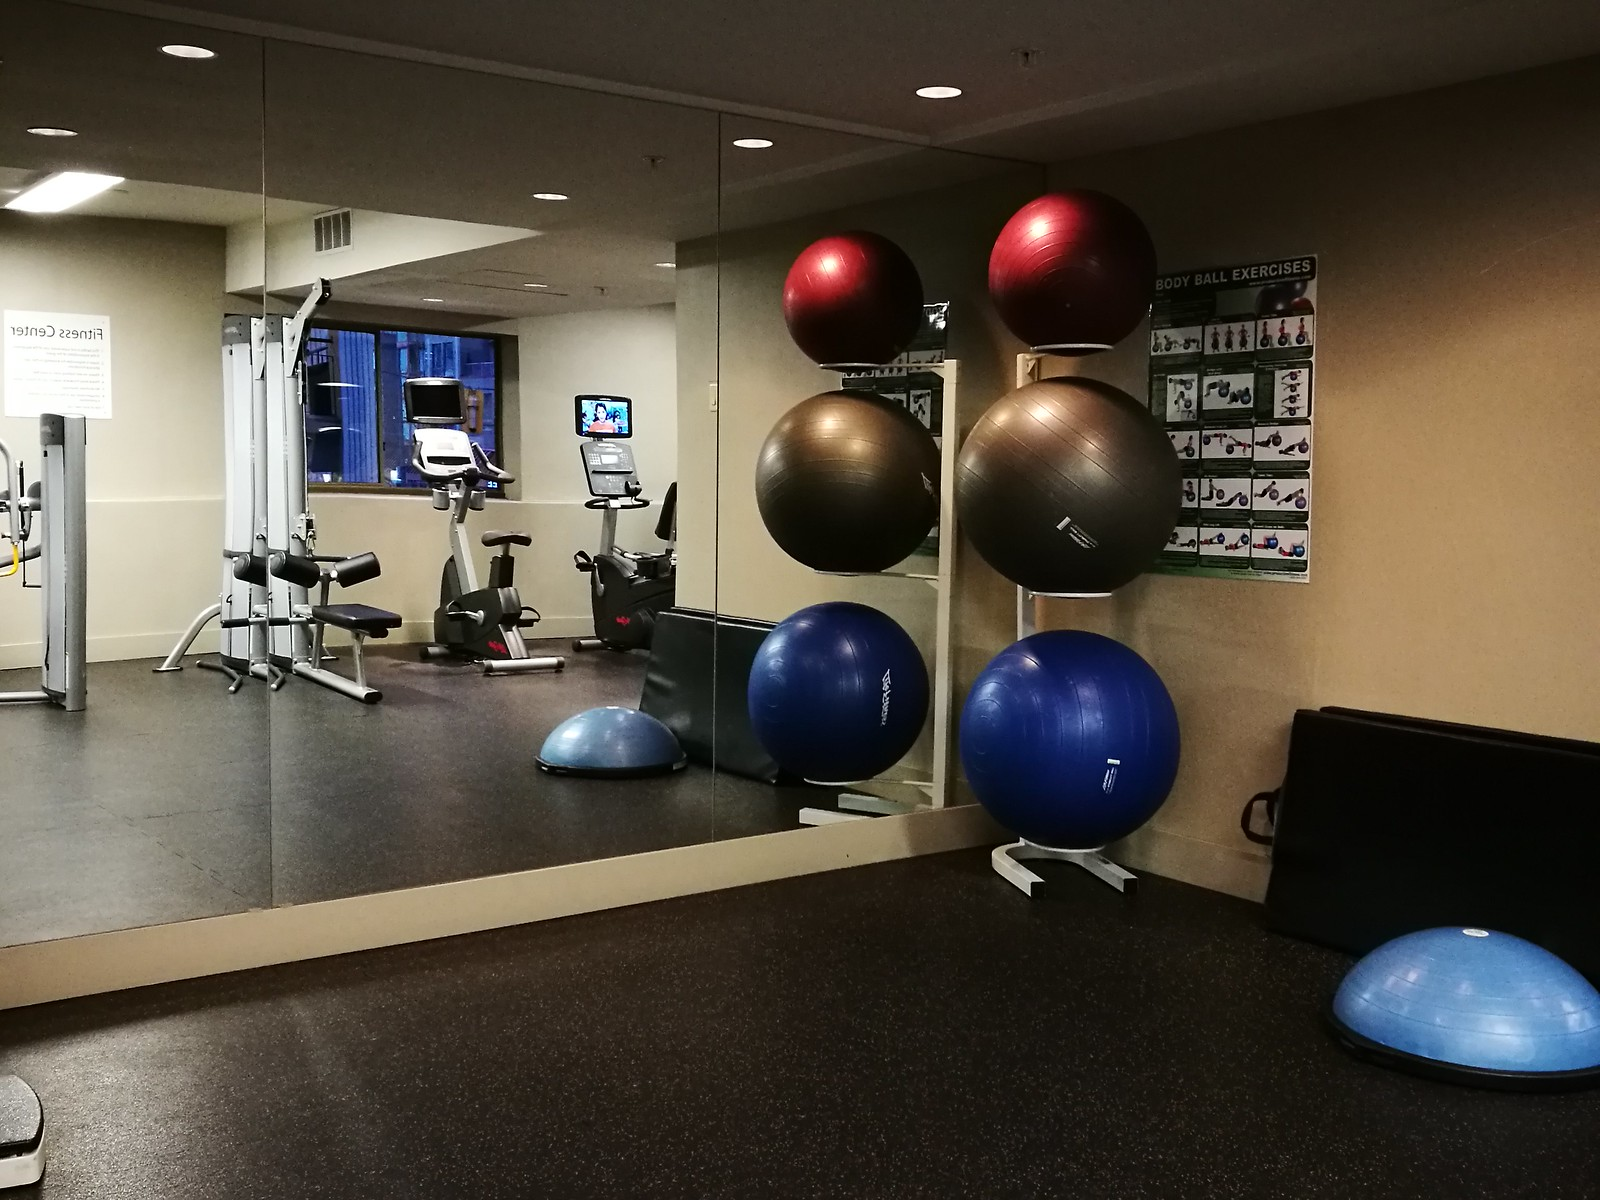 Fitness centre studio